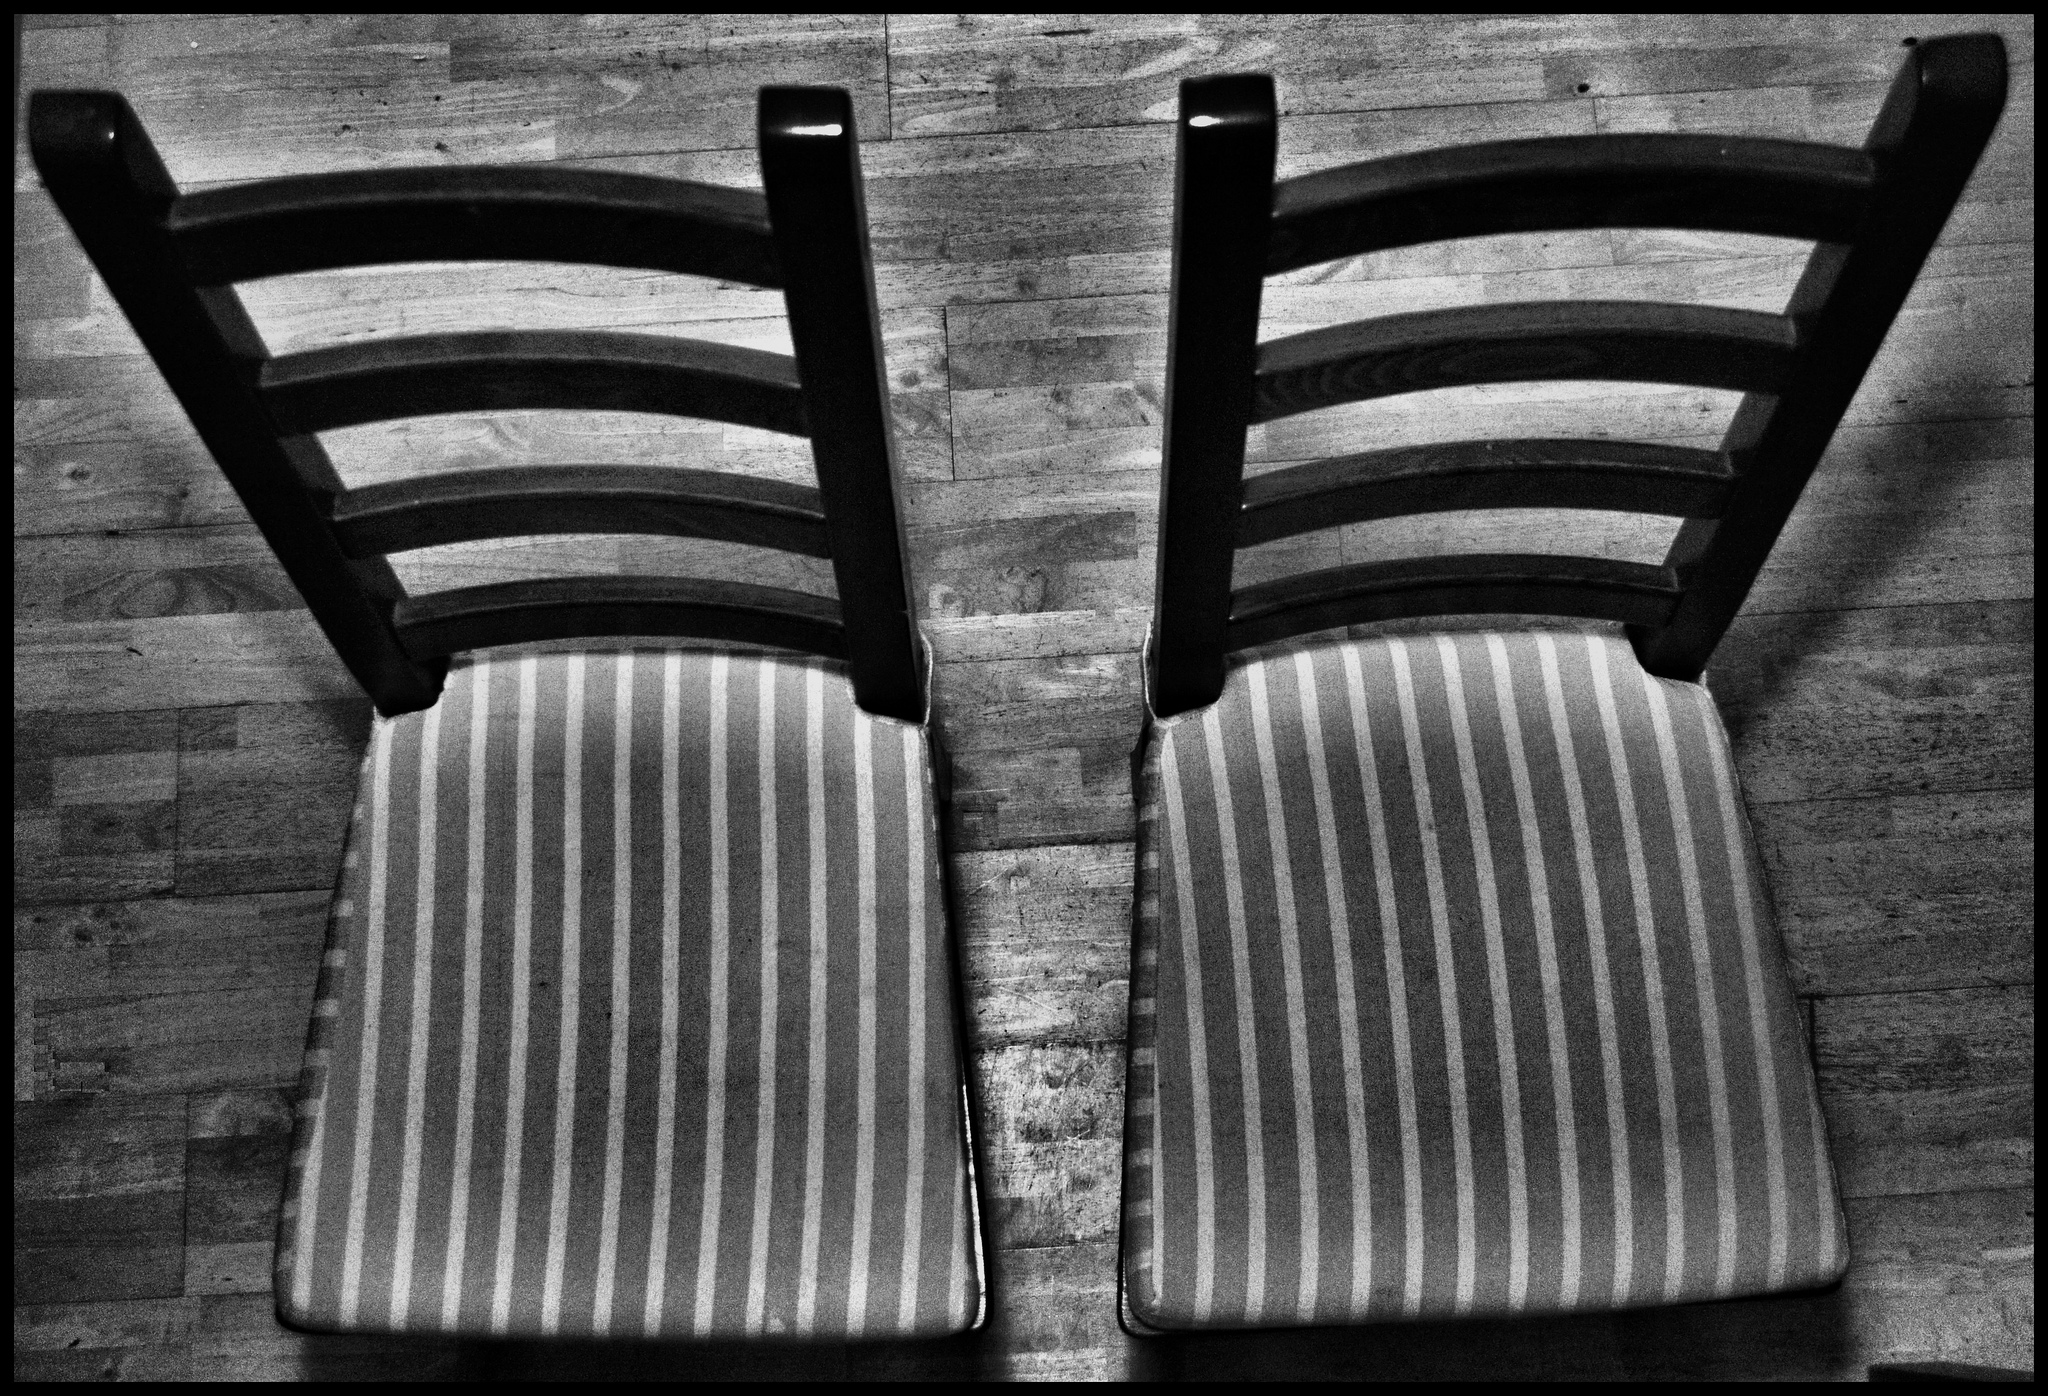 """2 Striped Chairs"" by Craig Sunter. Via  Flickr  and courtesy a  Creative Commons License ."